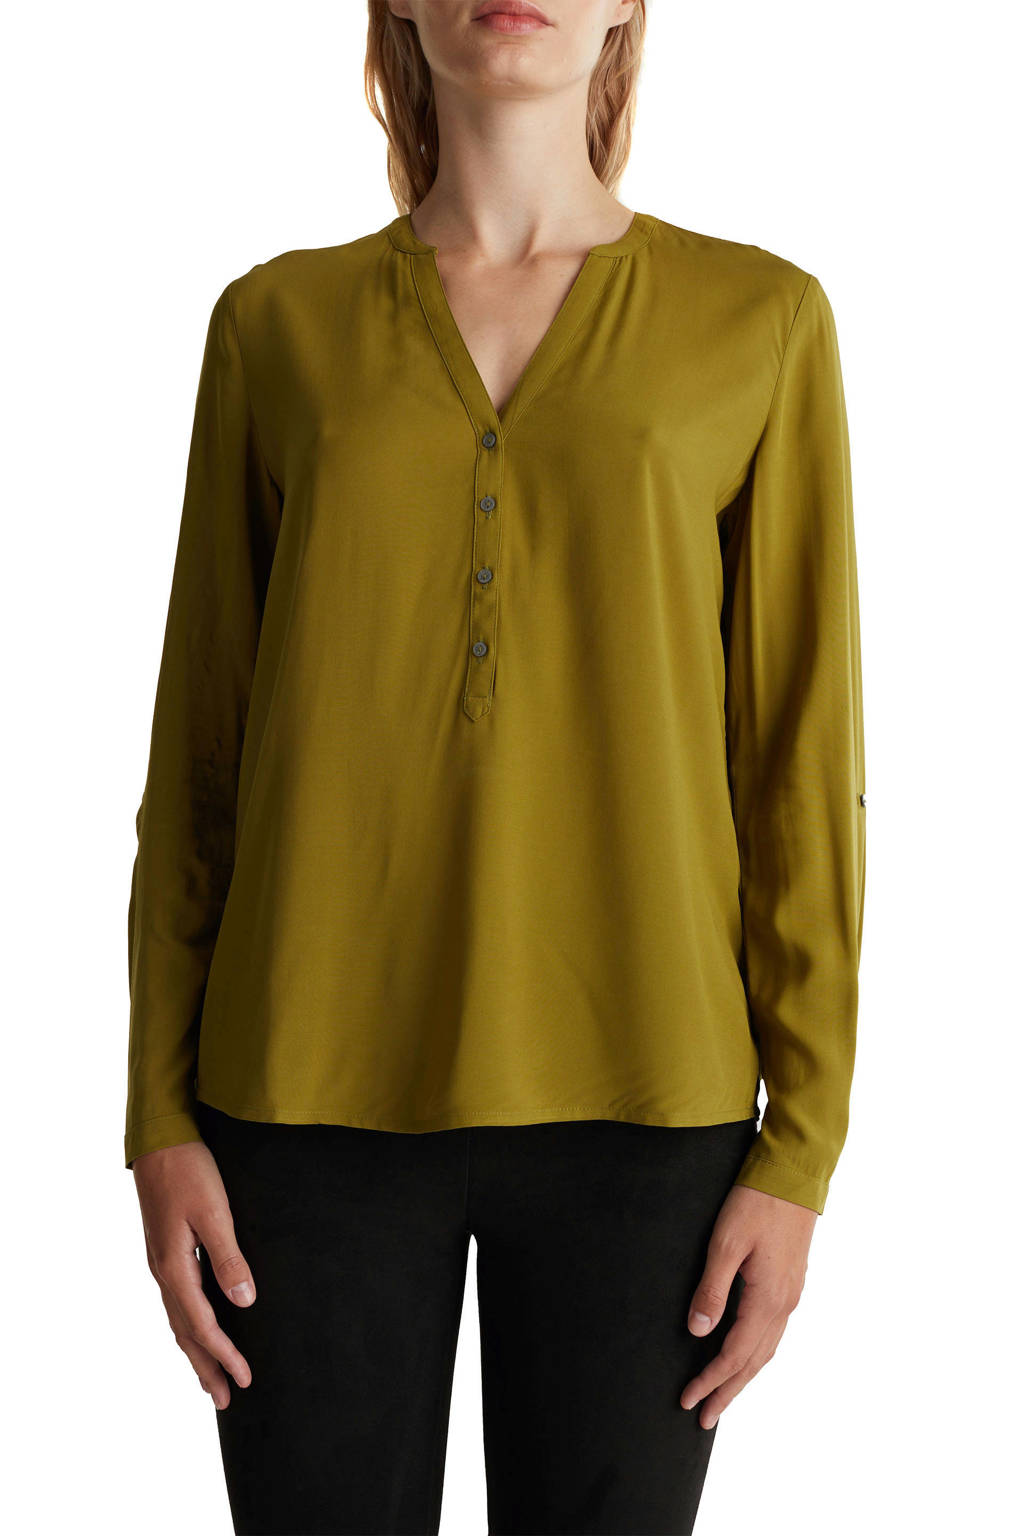 ESPRIT Women Casual top groen, Groen